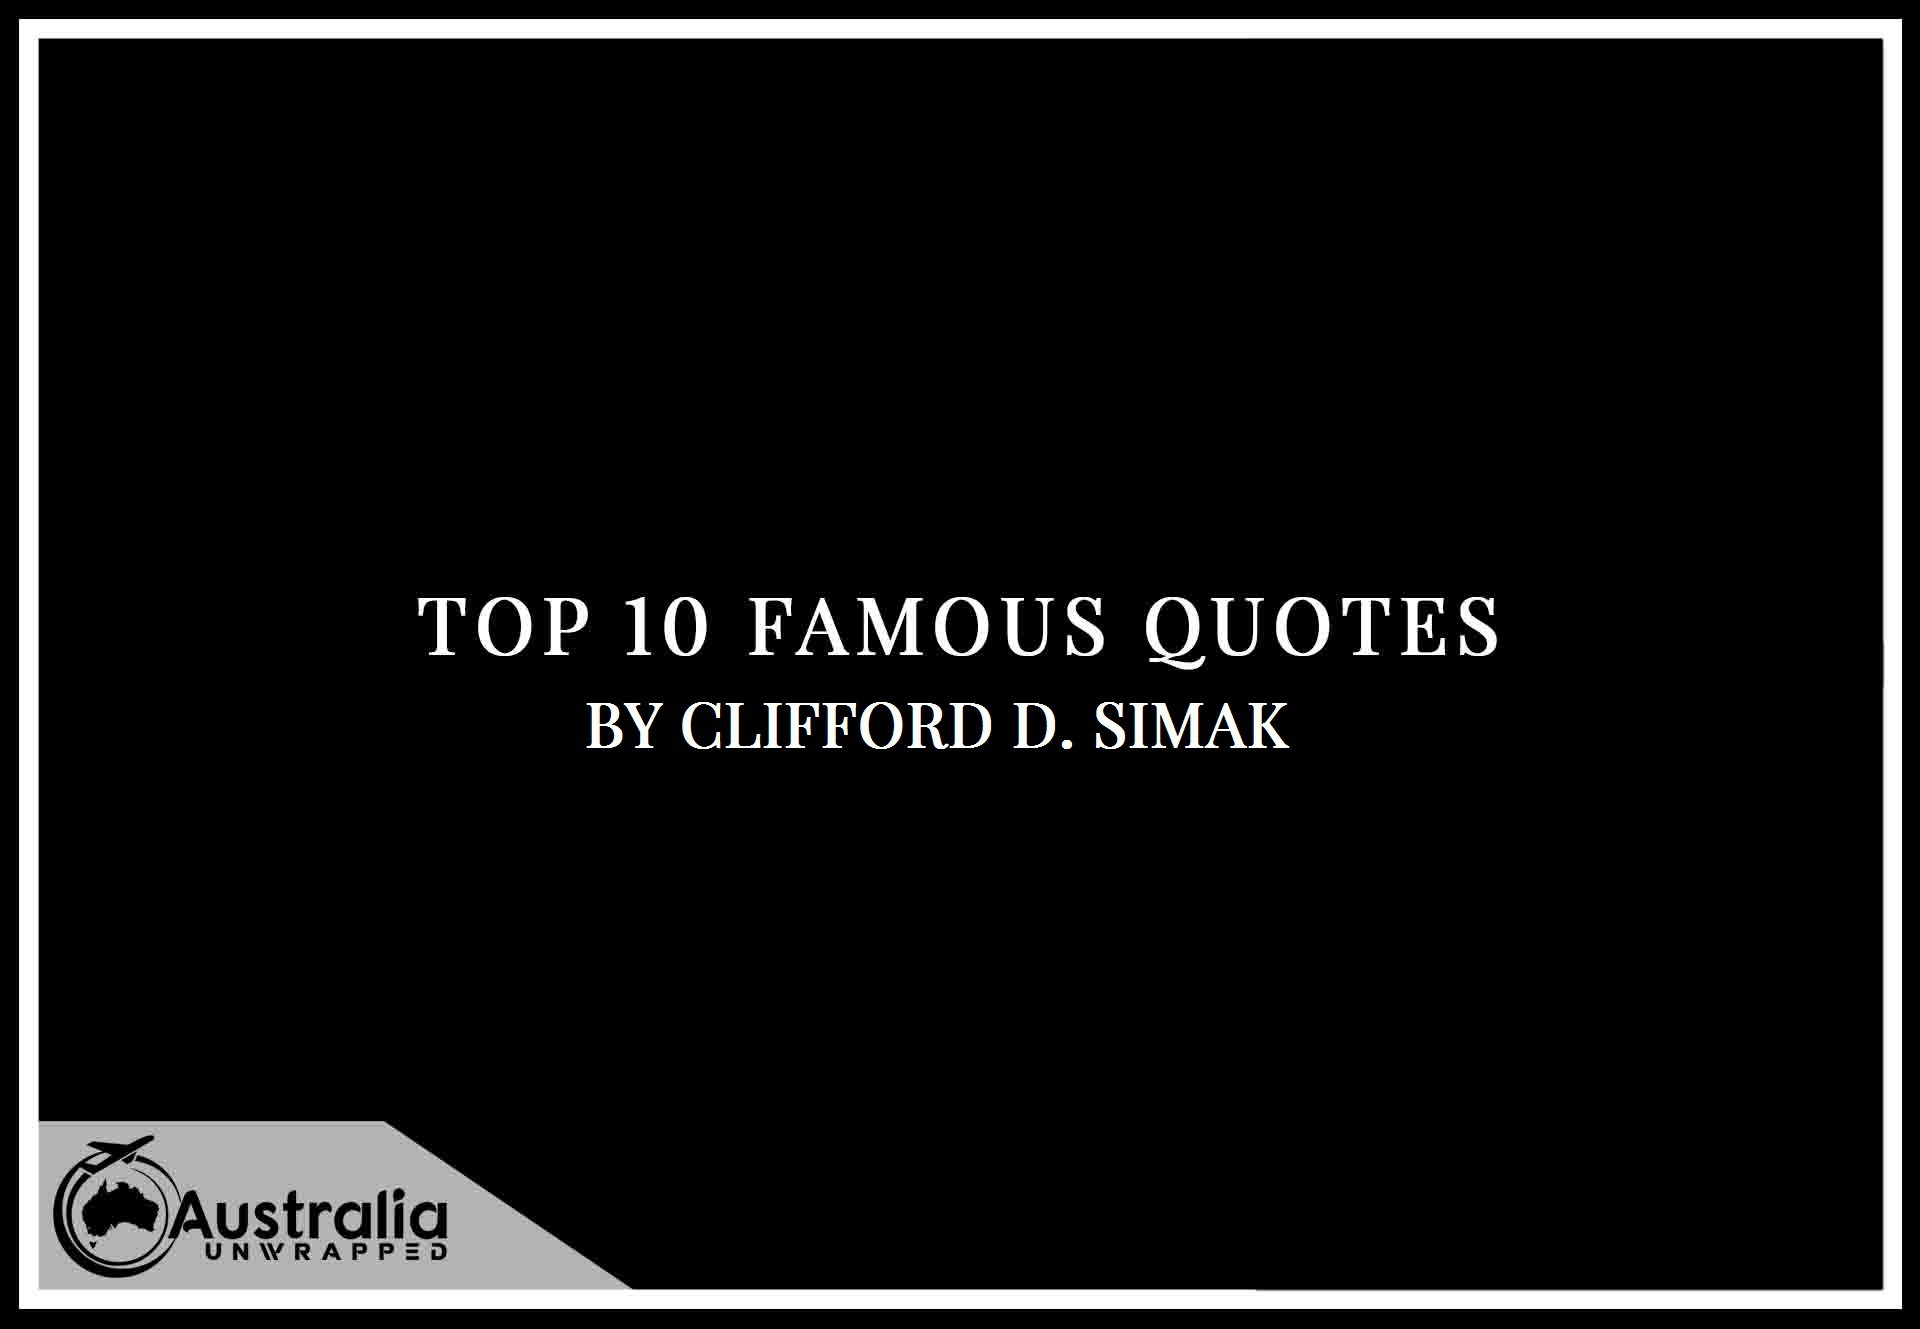 Clifford D. Simak's Top 10 Popular and Famous Quotes